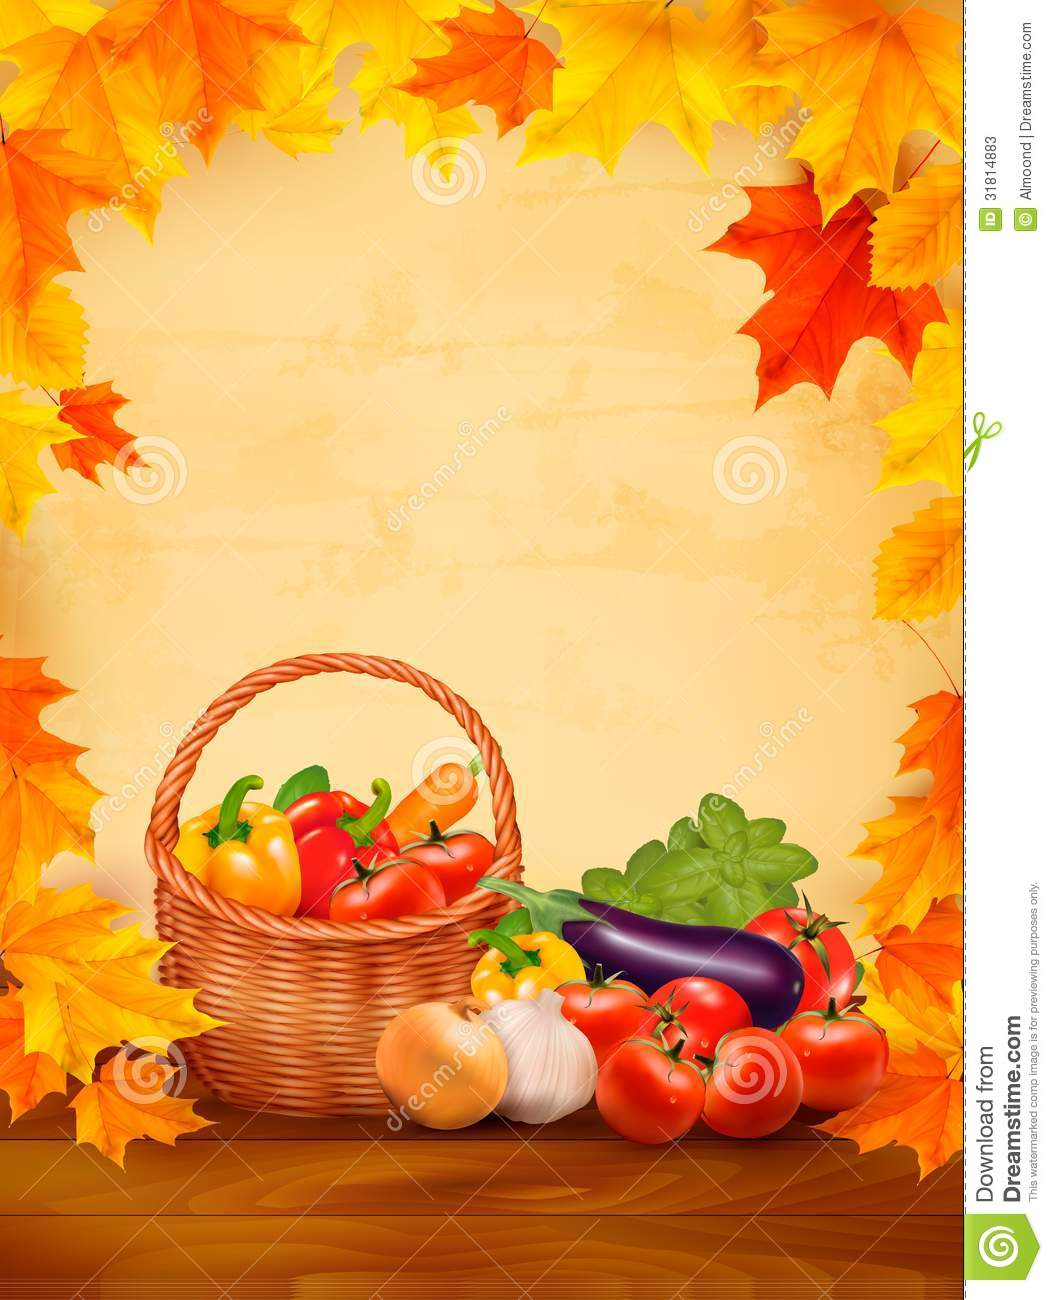 Autumn Background With Fresh Vegetables In Basket Stock